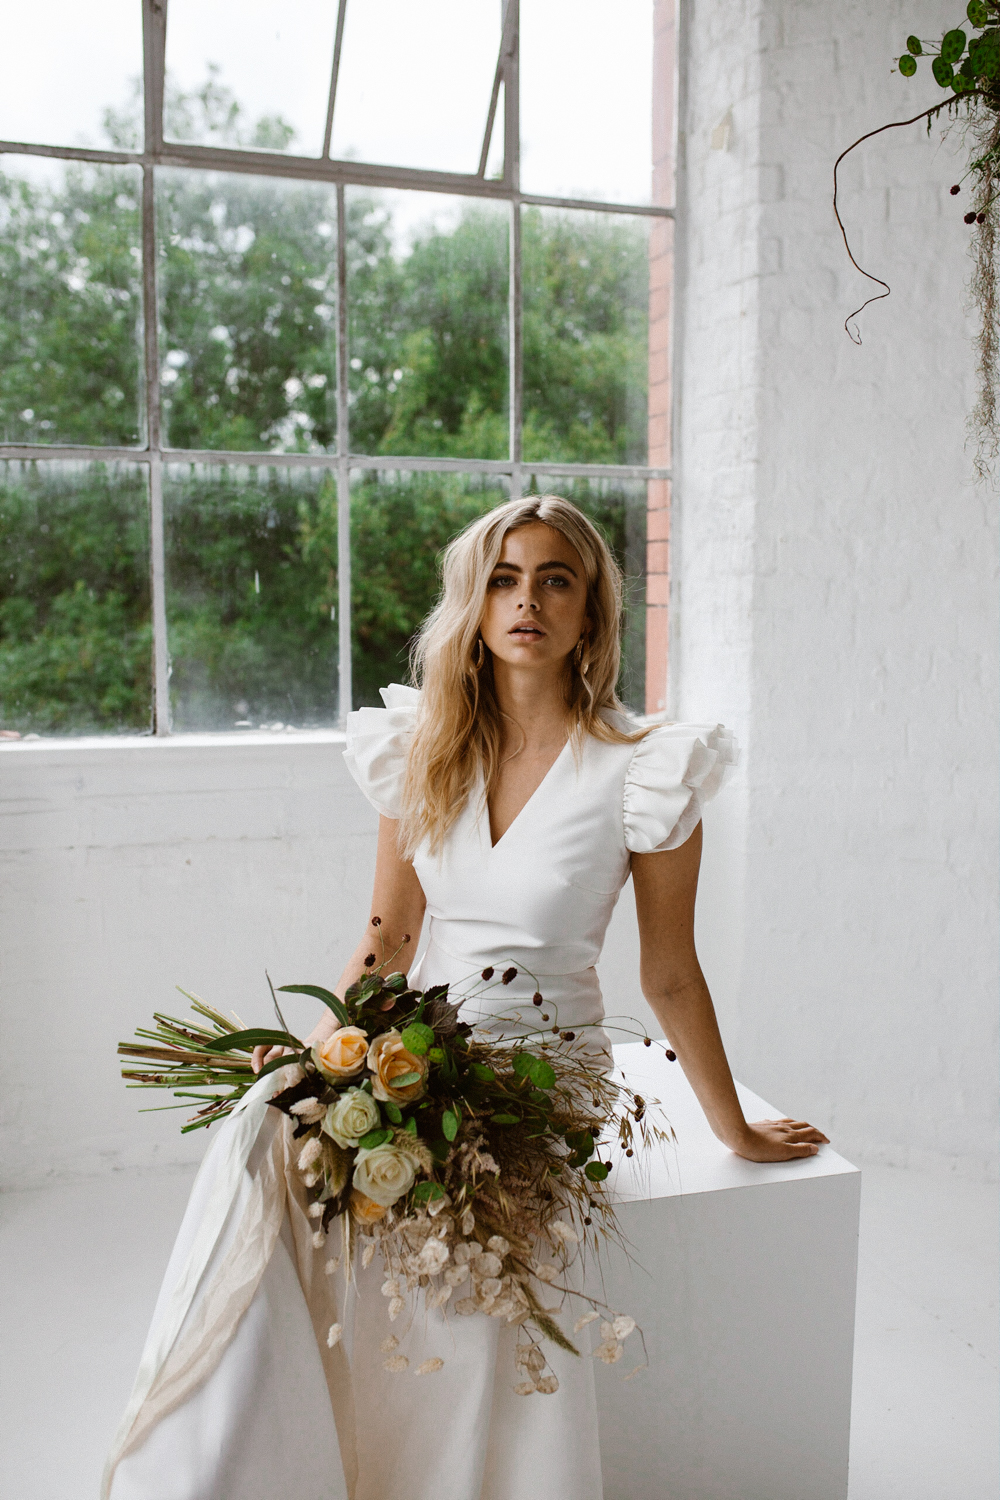 Minimalist Bridal Style | Wedding dress by Halfpenny London | Image by Agnes Black.jpg